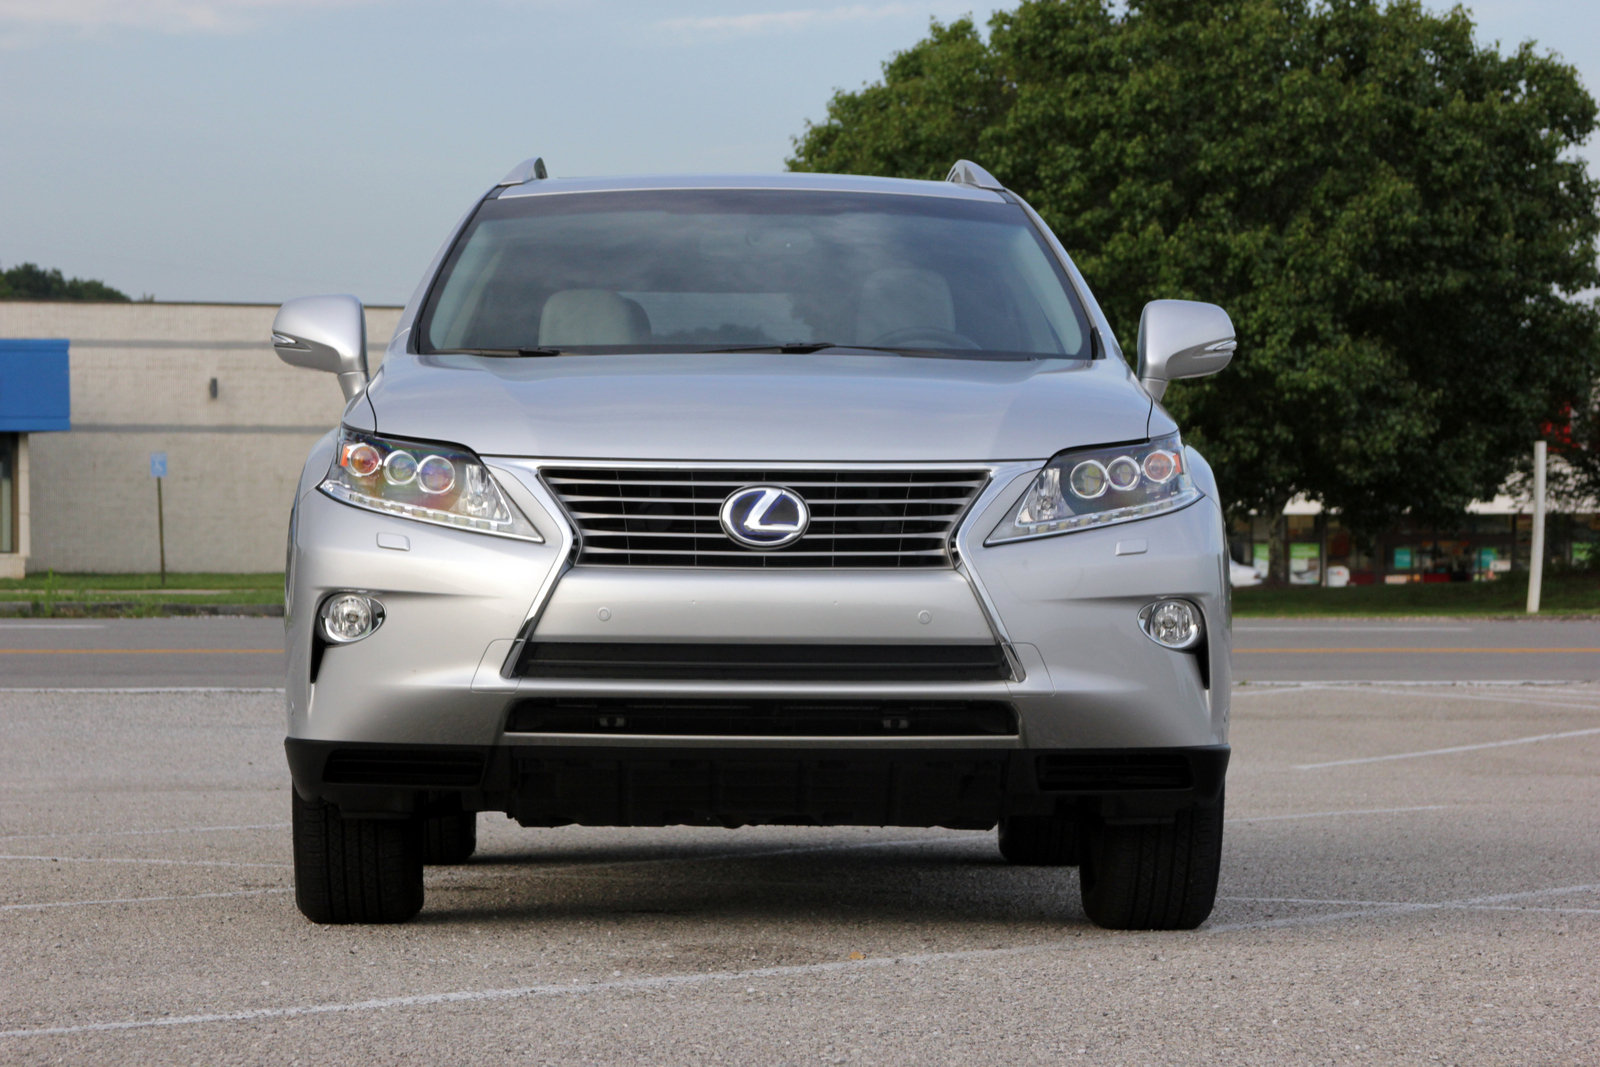 2015 lexus rx 450h driven picture 558293 car review top speed. Black Bedroom Furniture Sets. Home Design Ideas